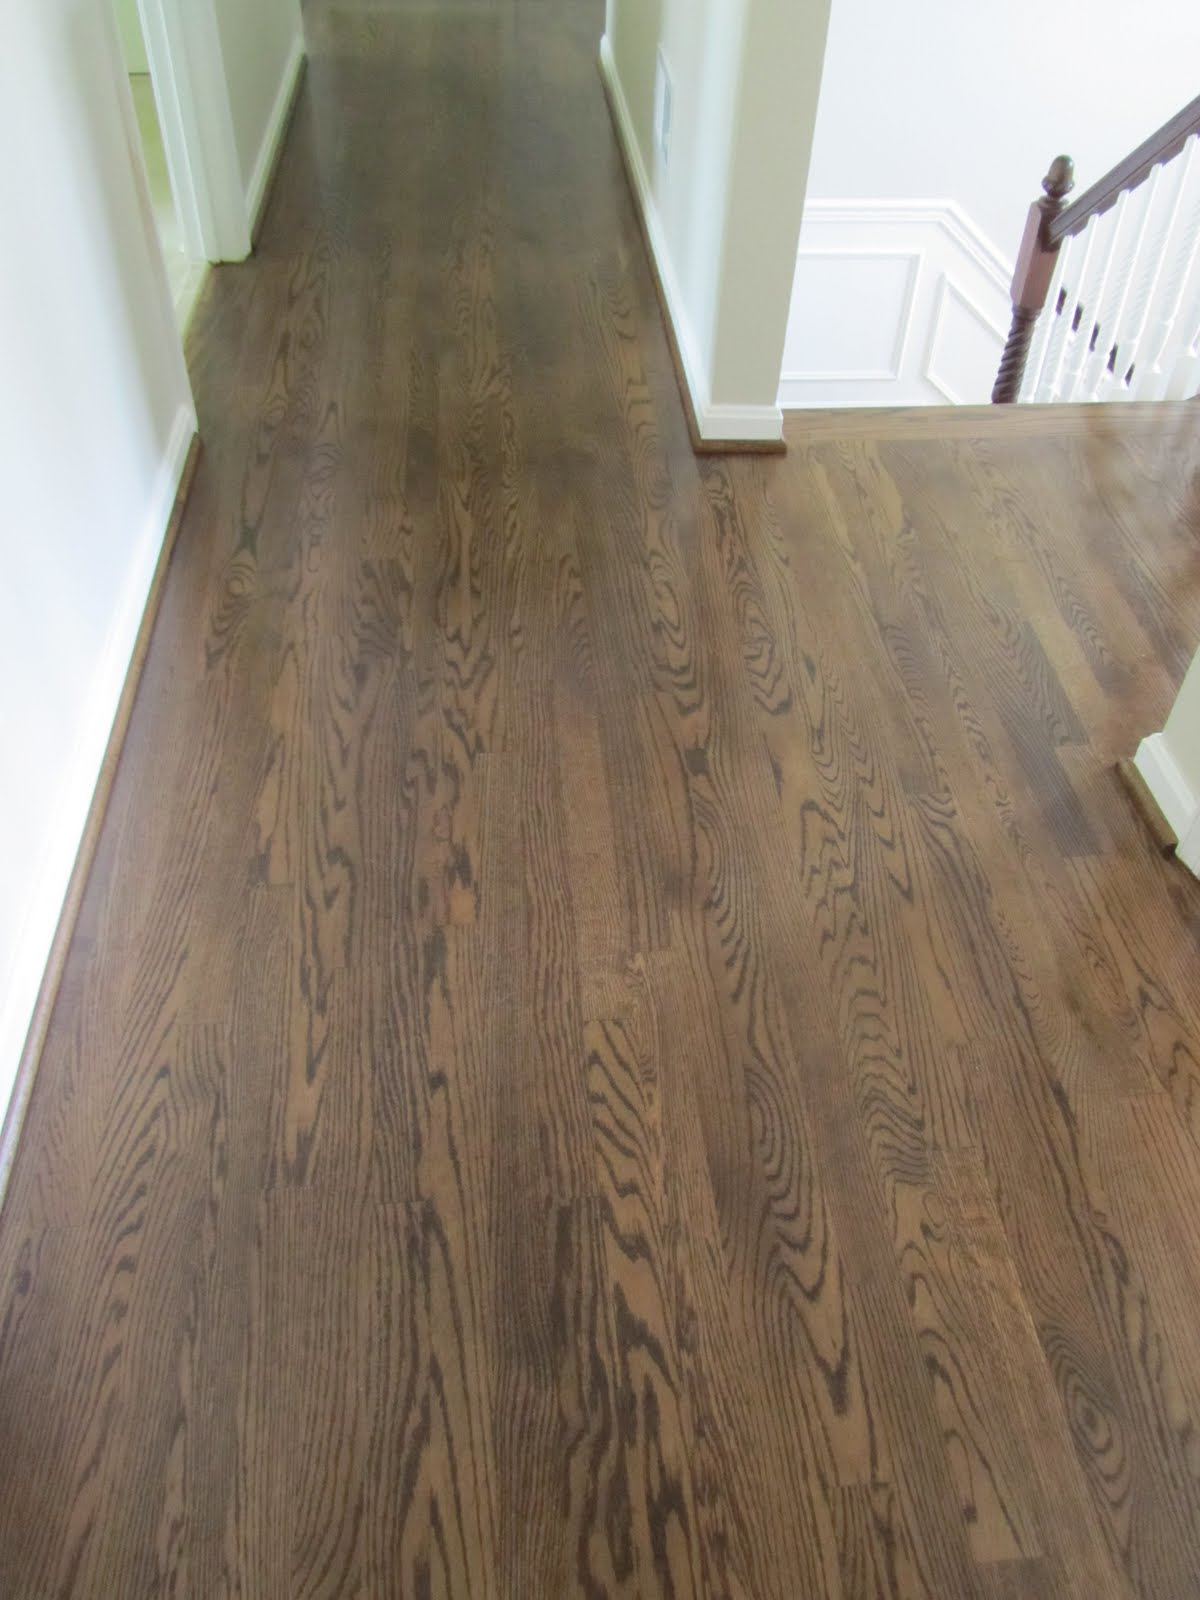 new floor in the upstairs hallway smooth as silk but i am going to add a gorgeous runner that my husband brought home from his travels